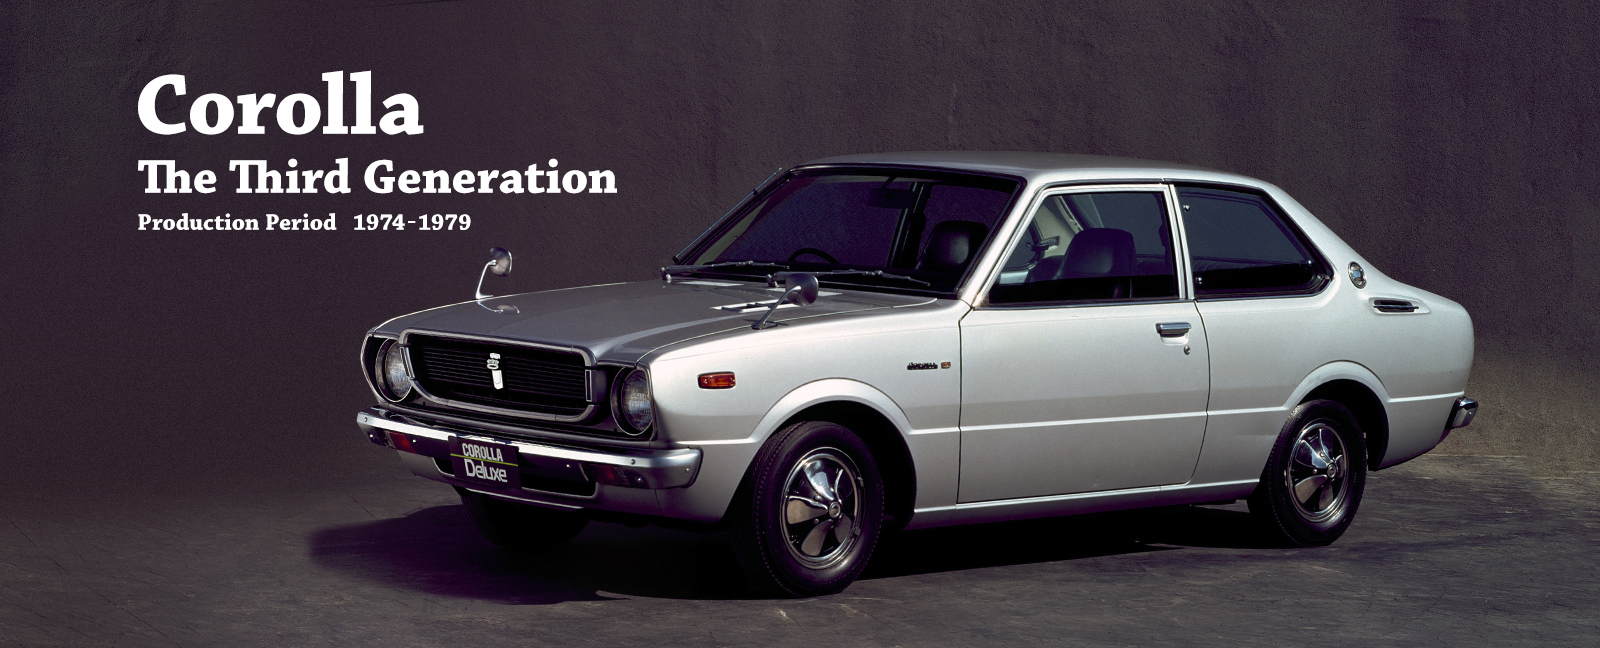 Vehicle Heritage, Corolla, The Third Generation